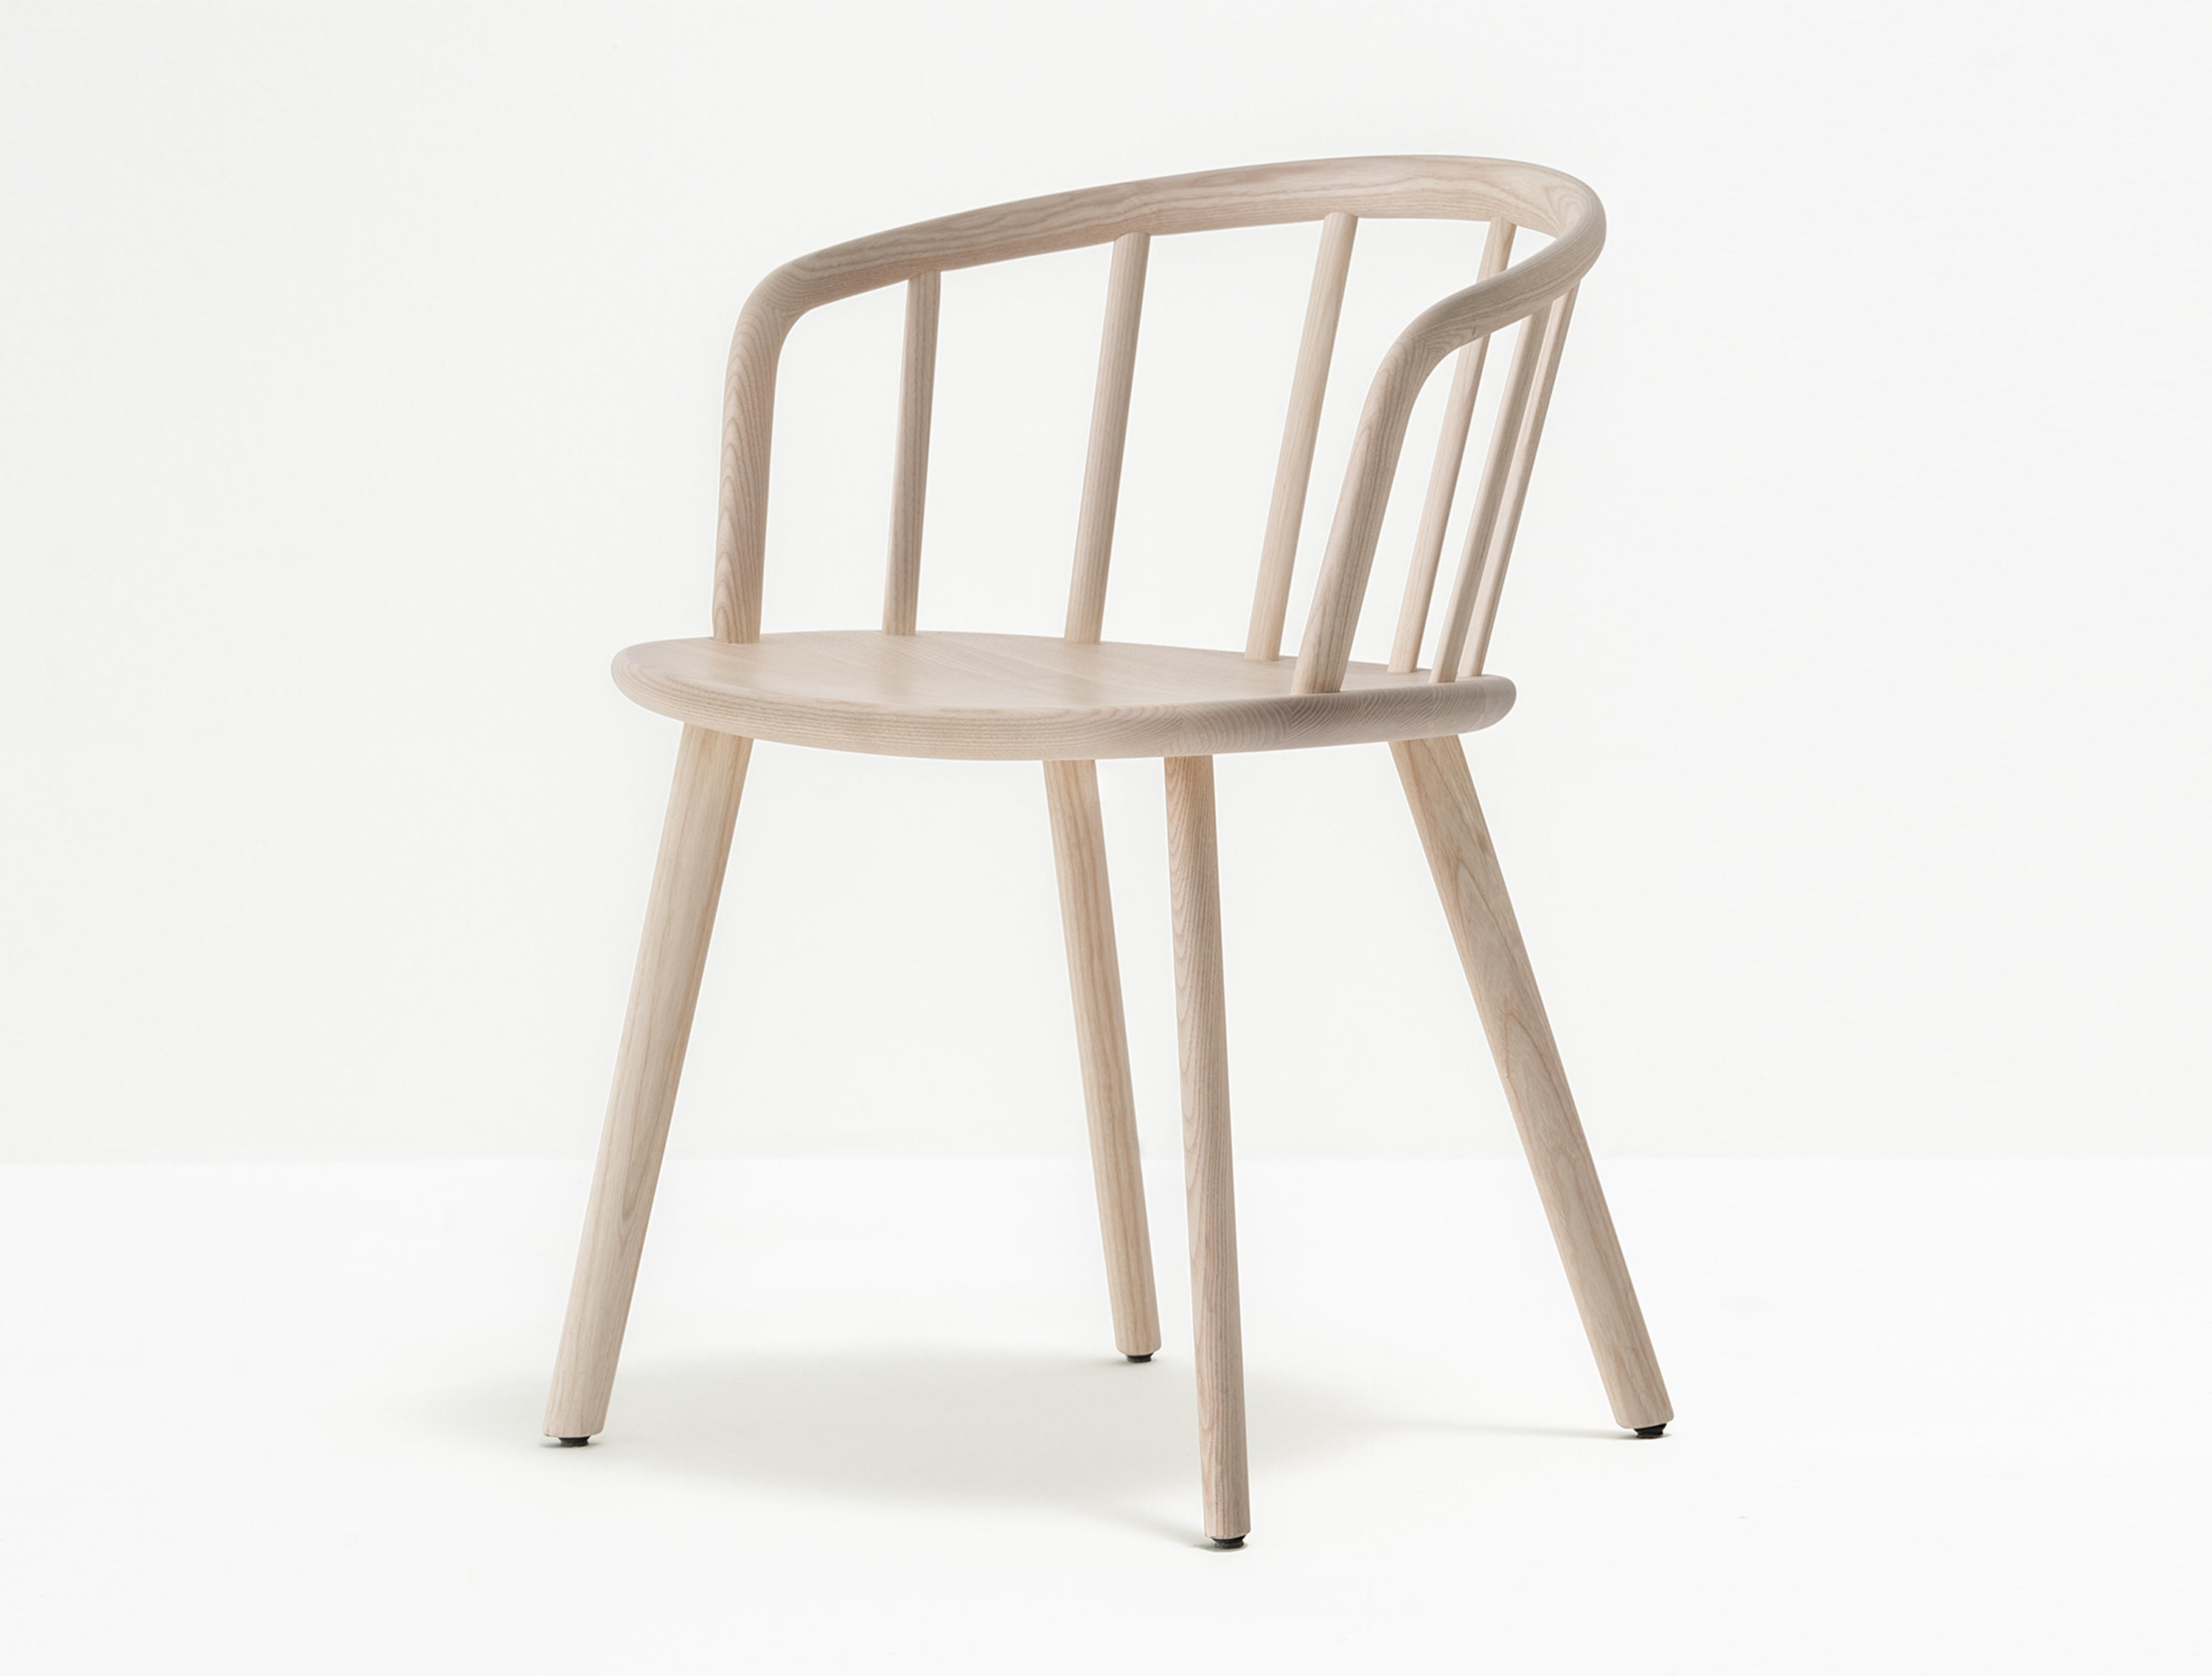 Ordinaire Nym Armchair 2835 By PEDRALI | Chairs ...